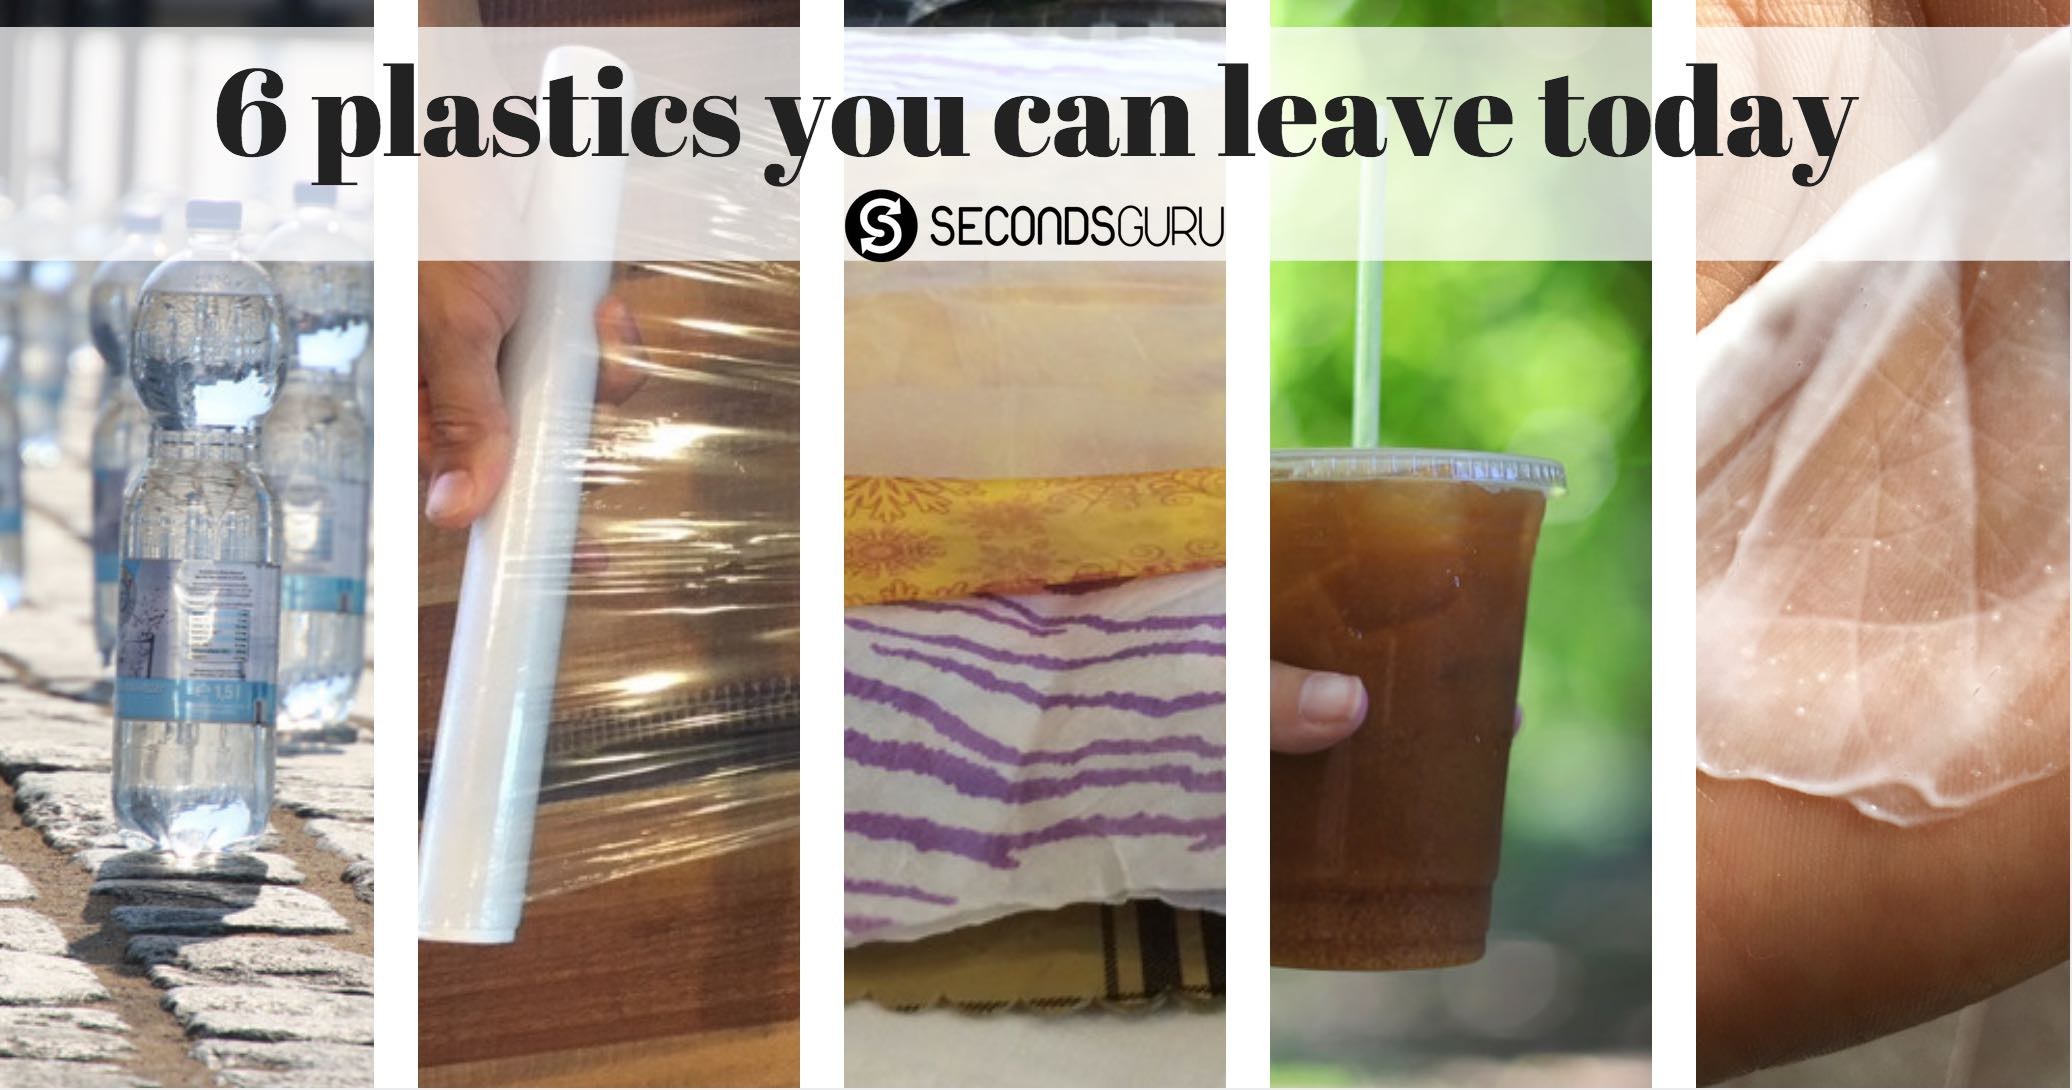 6 disposable plastics you can leave easily